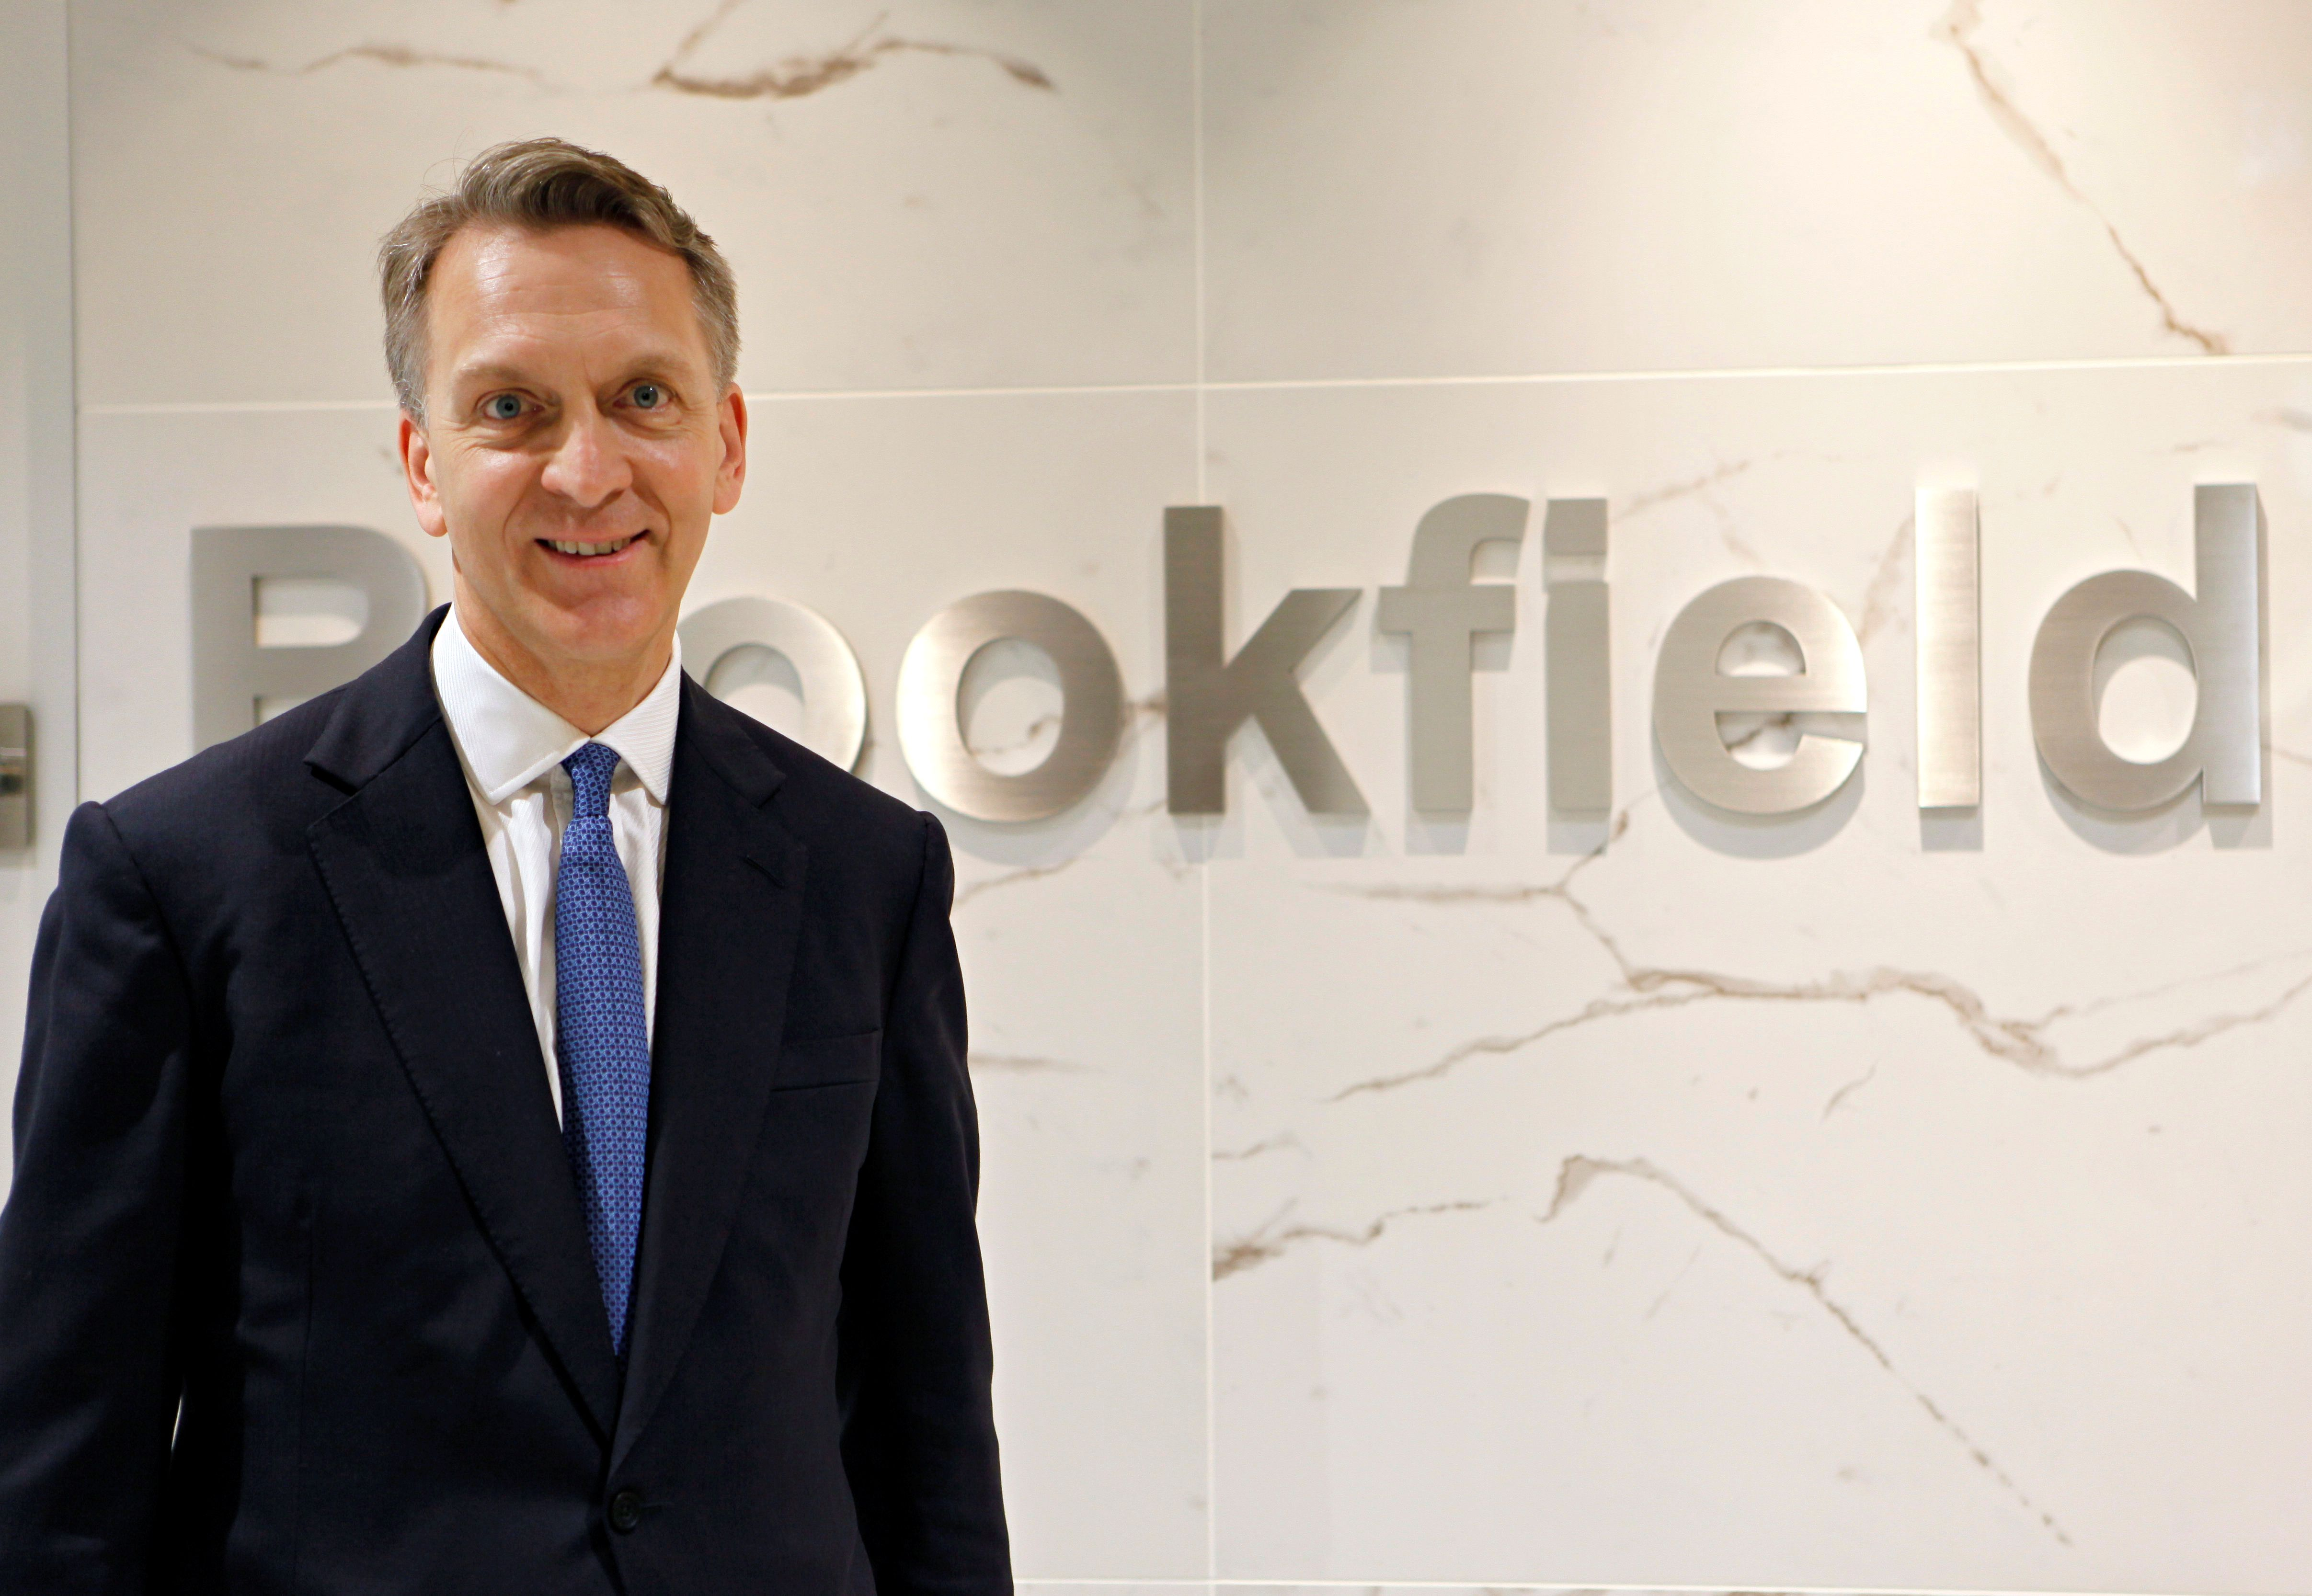 Brookfield CEO wants Oaktree veteran Howard Marks to 'keep doing what he does'